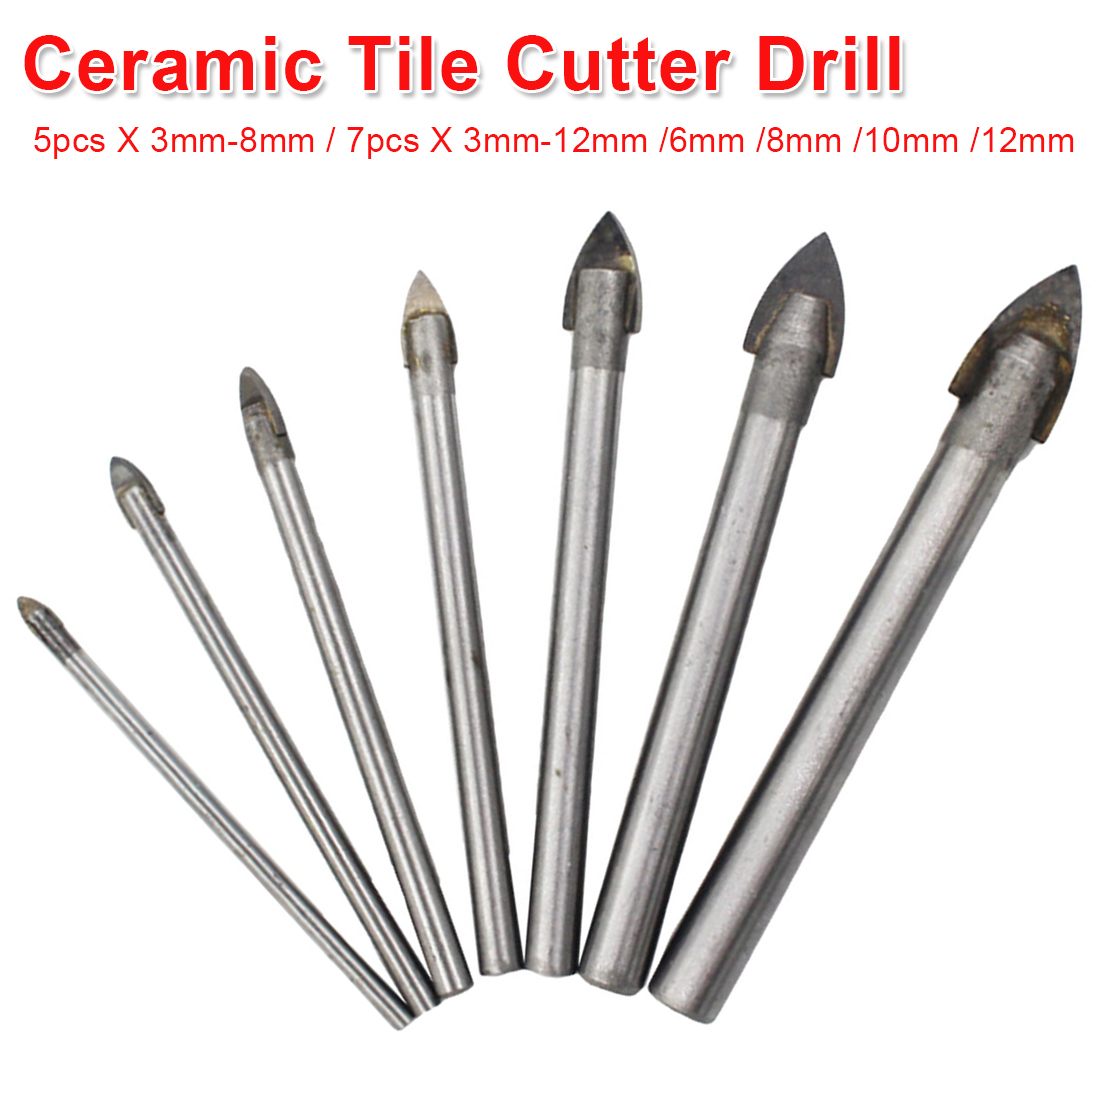 Tungsten Carbide Tipped Ceramic Tile Cutter Round Shank Glass Drill Bit Set Power Tools For Glass/ Ceramics/ Tiles Drill 3-12mm